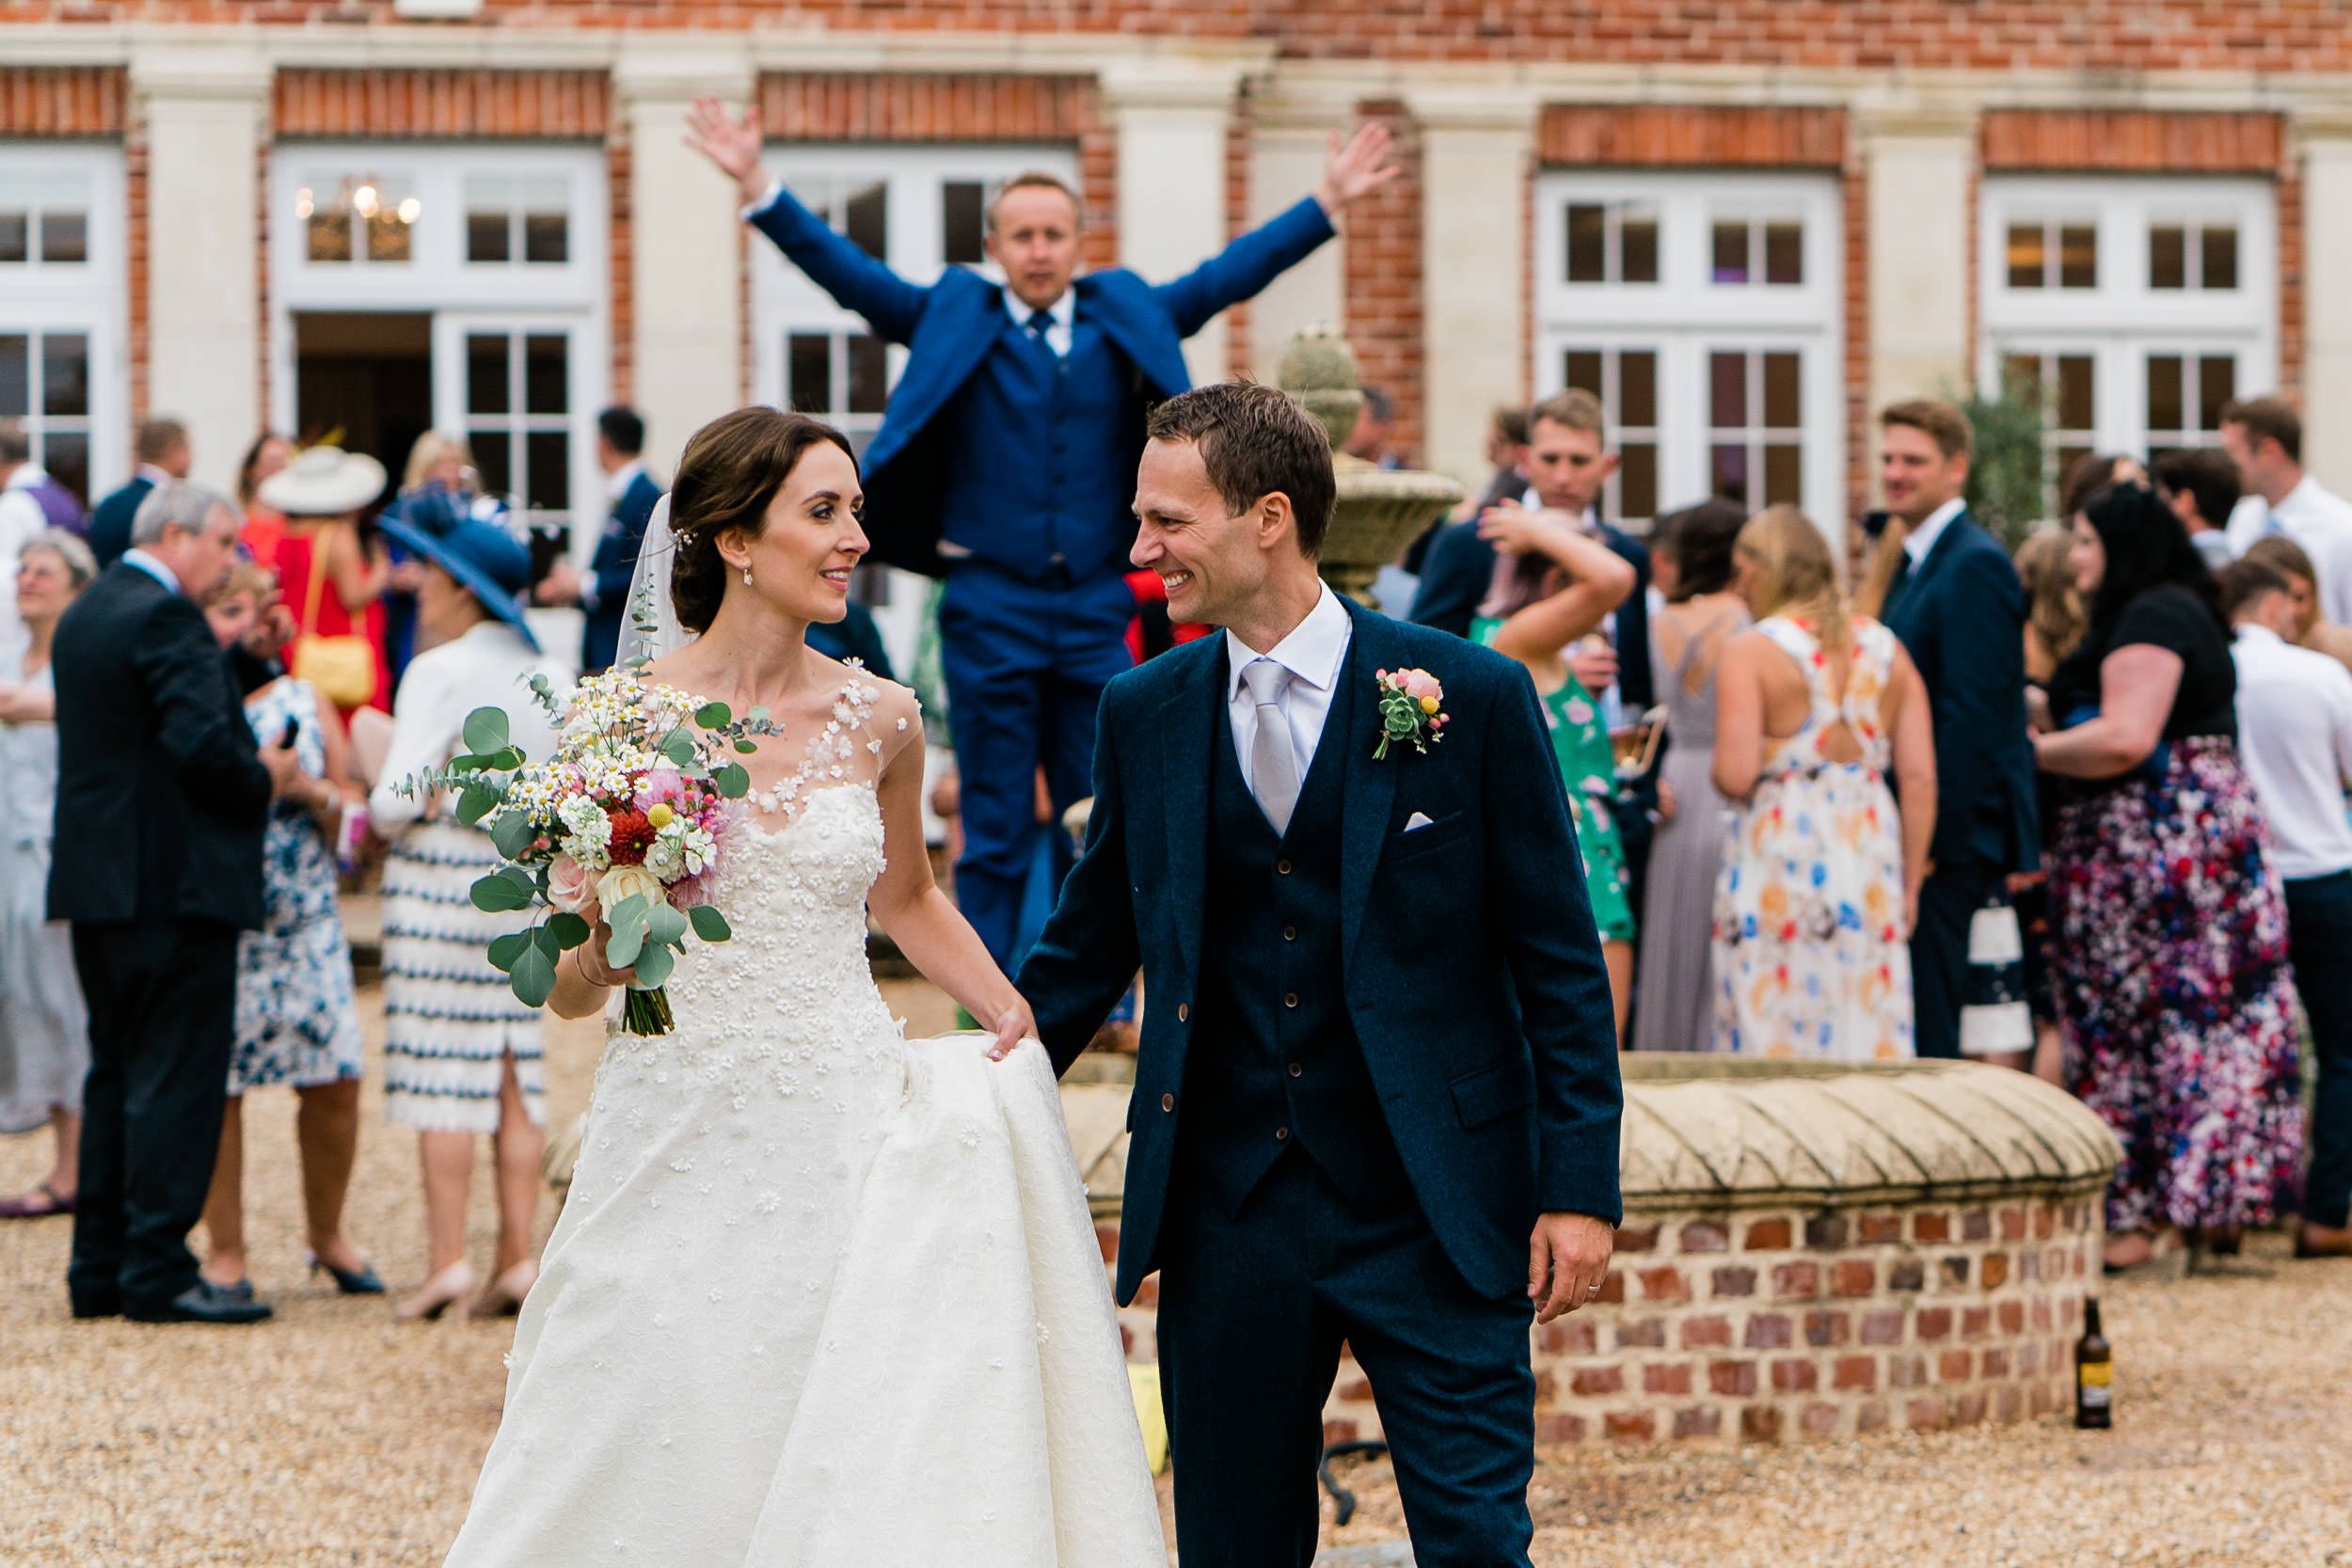 Orchardleigh Estate Wedding - Bride and Groom with Guests in the Walled Garden